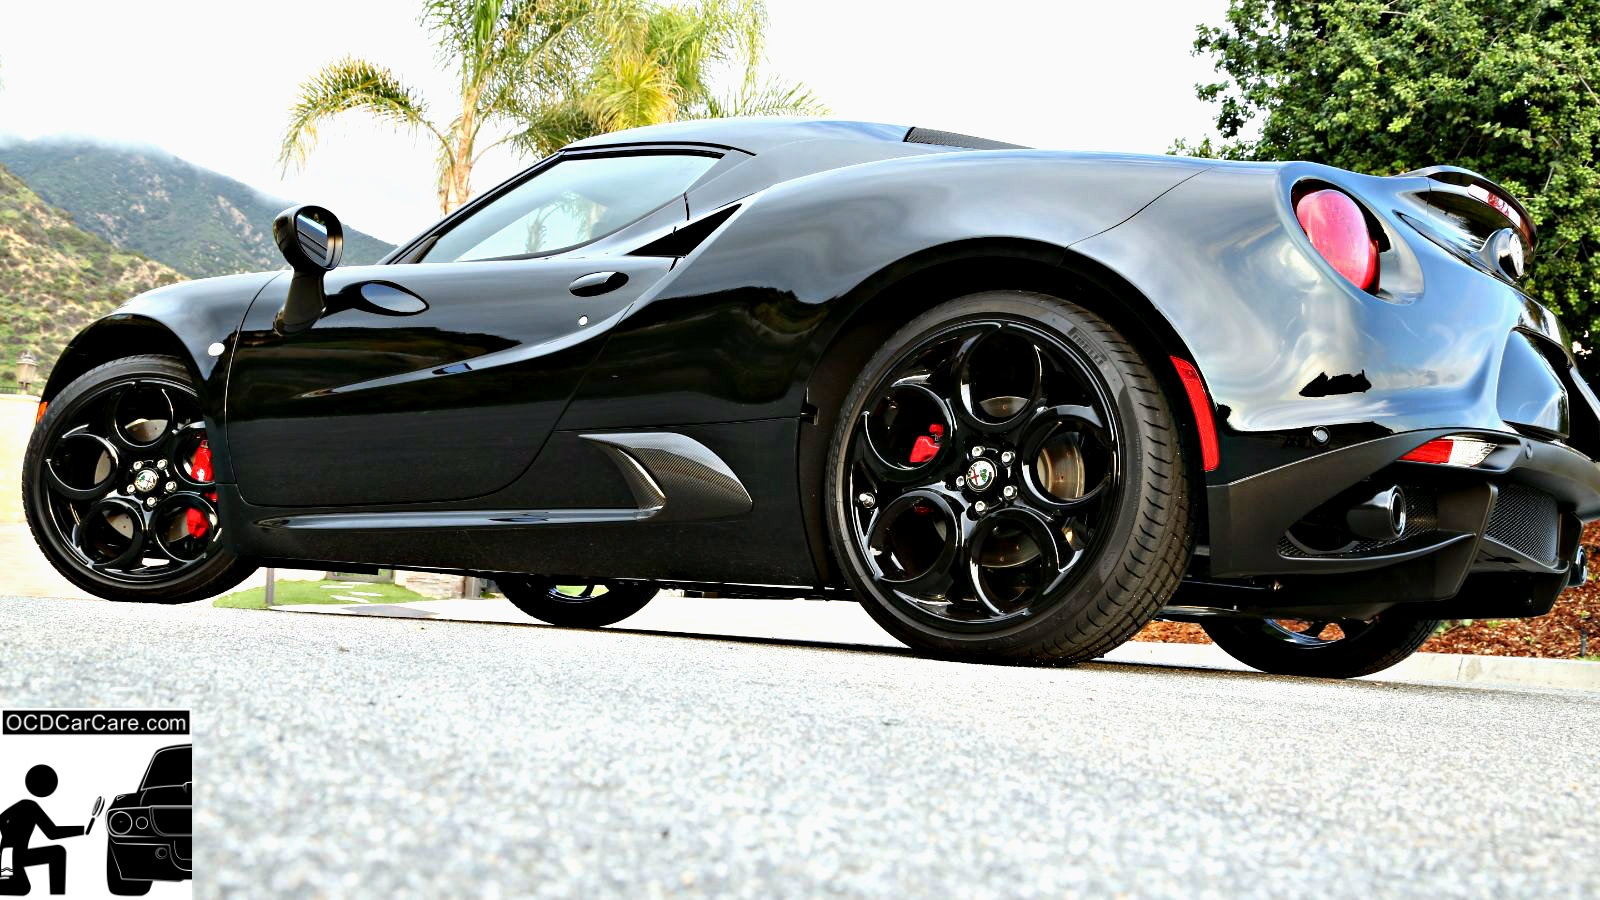 Gloss & Stance are a perfect marriage on this Alfa Romeo 4C wearing a ceramic nano coating.